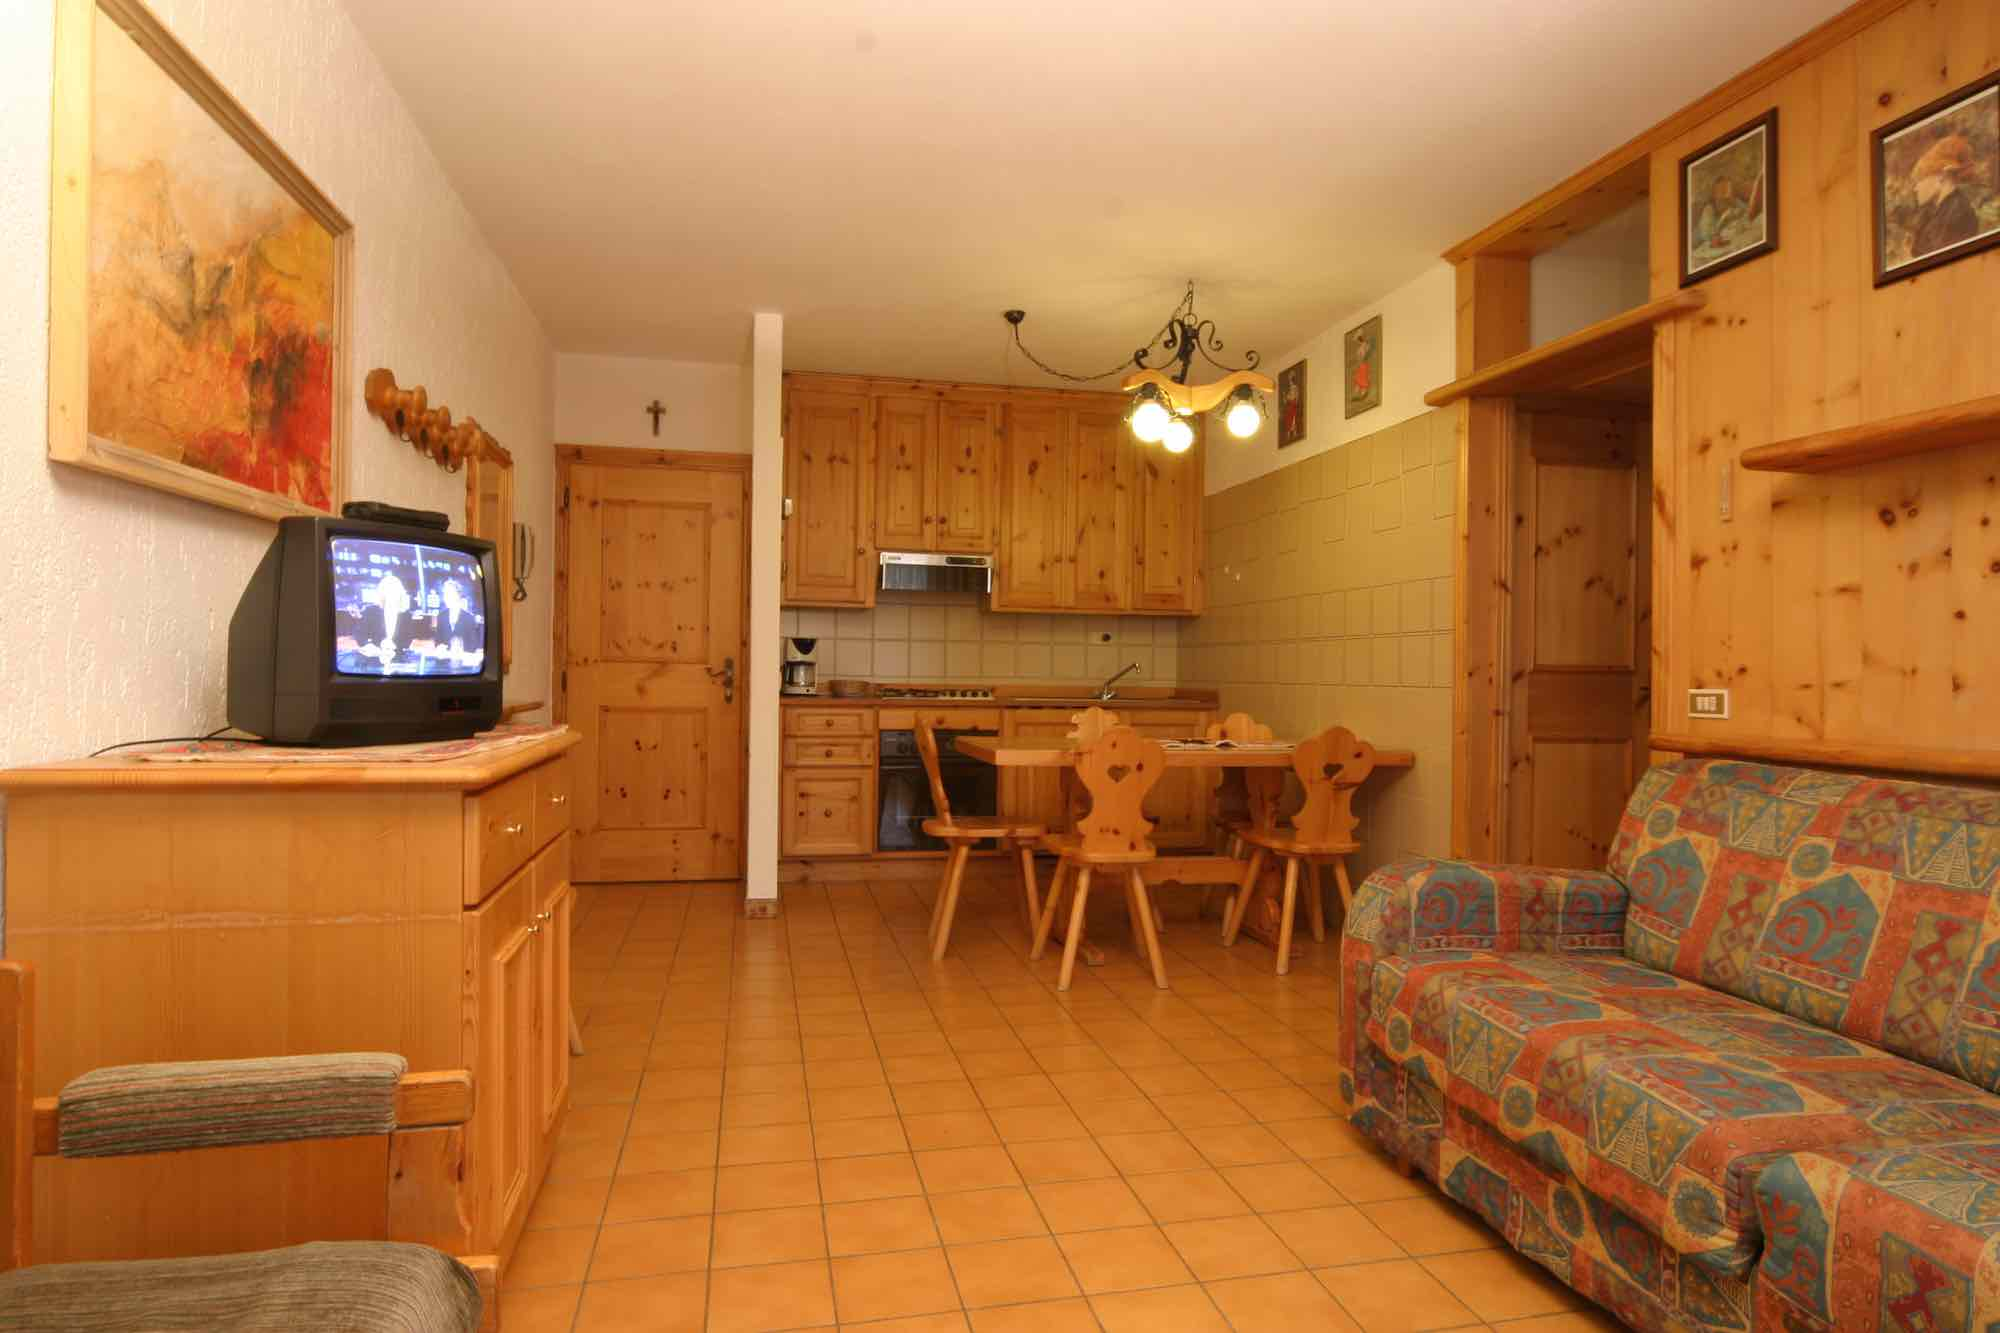 Bait da Borch - Via Saroch N.1430/f, Livigno 23041 - Apartment - Appartamento Federia 1